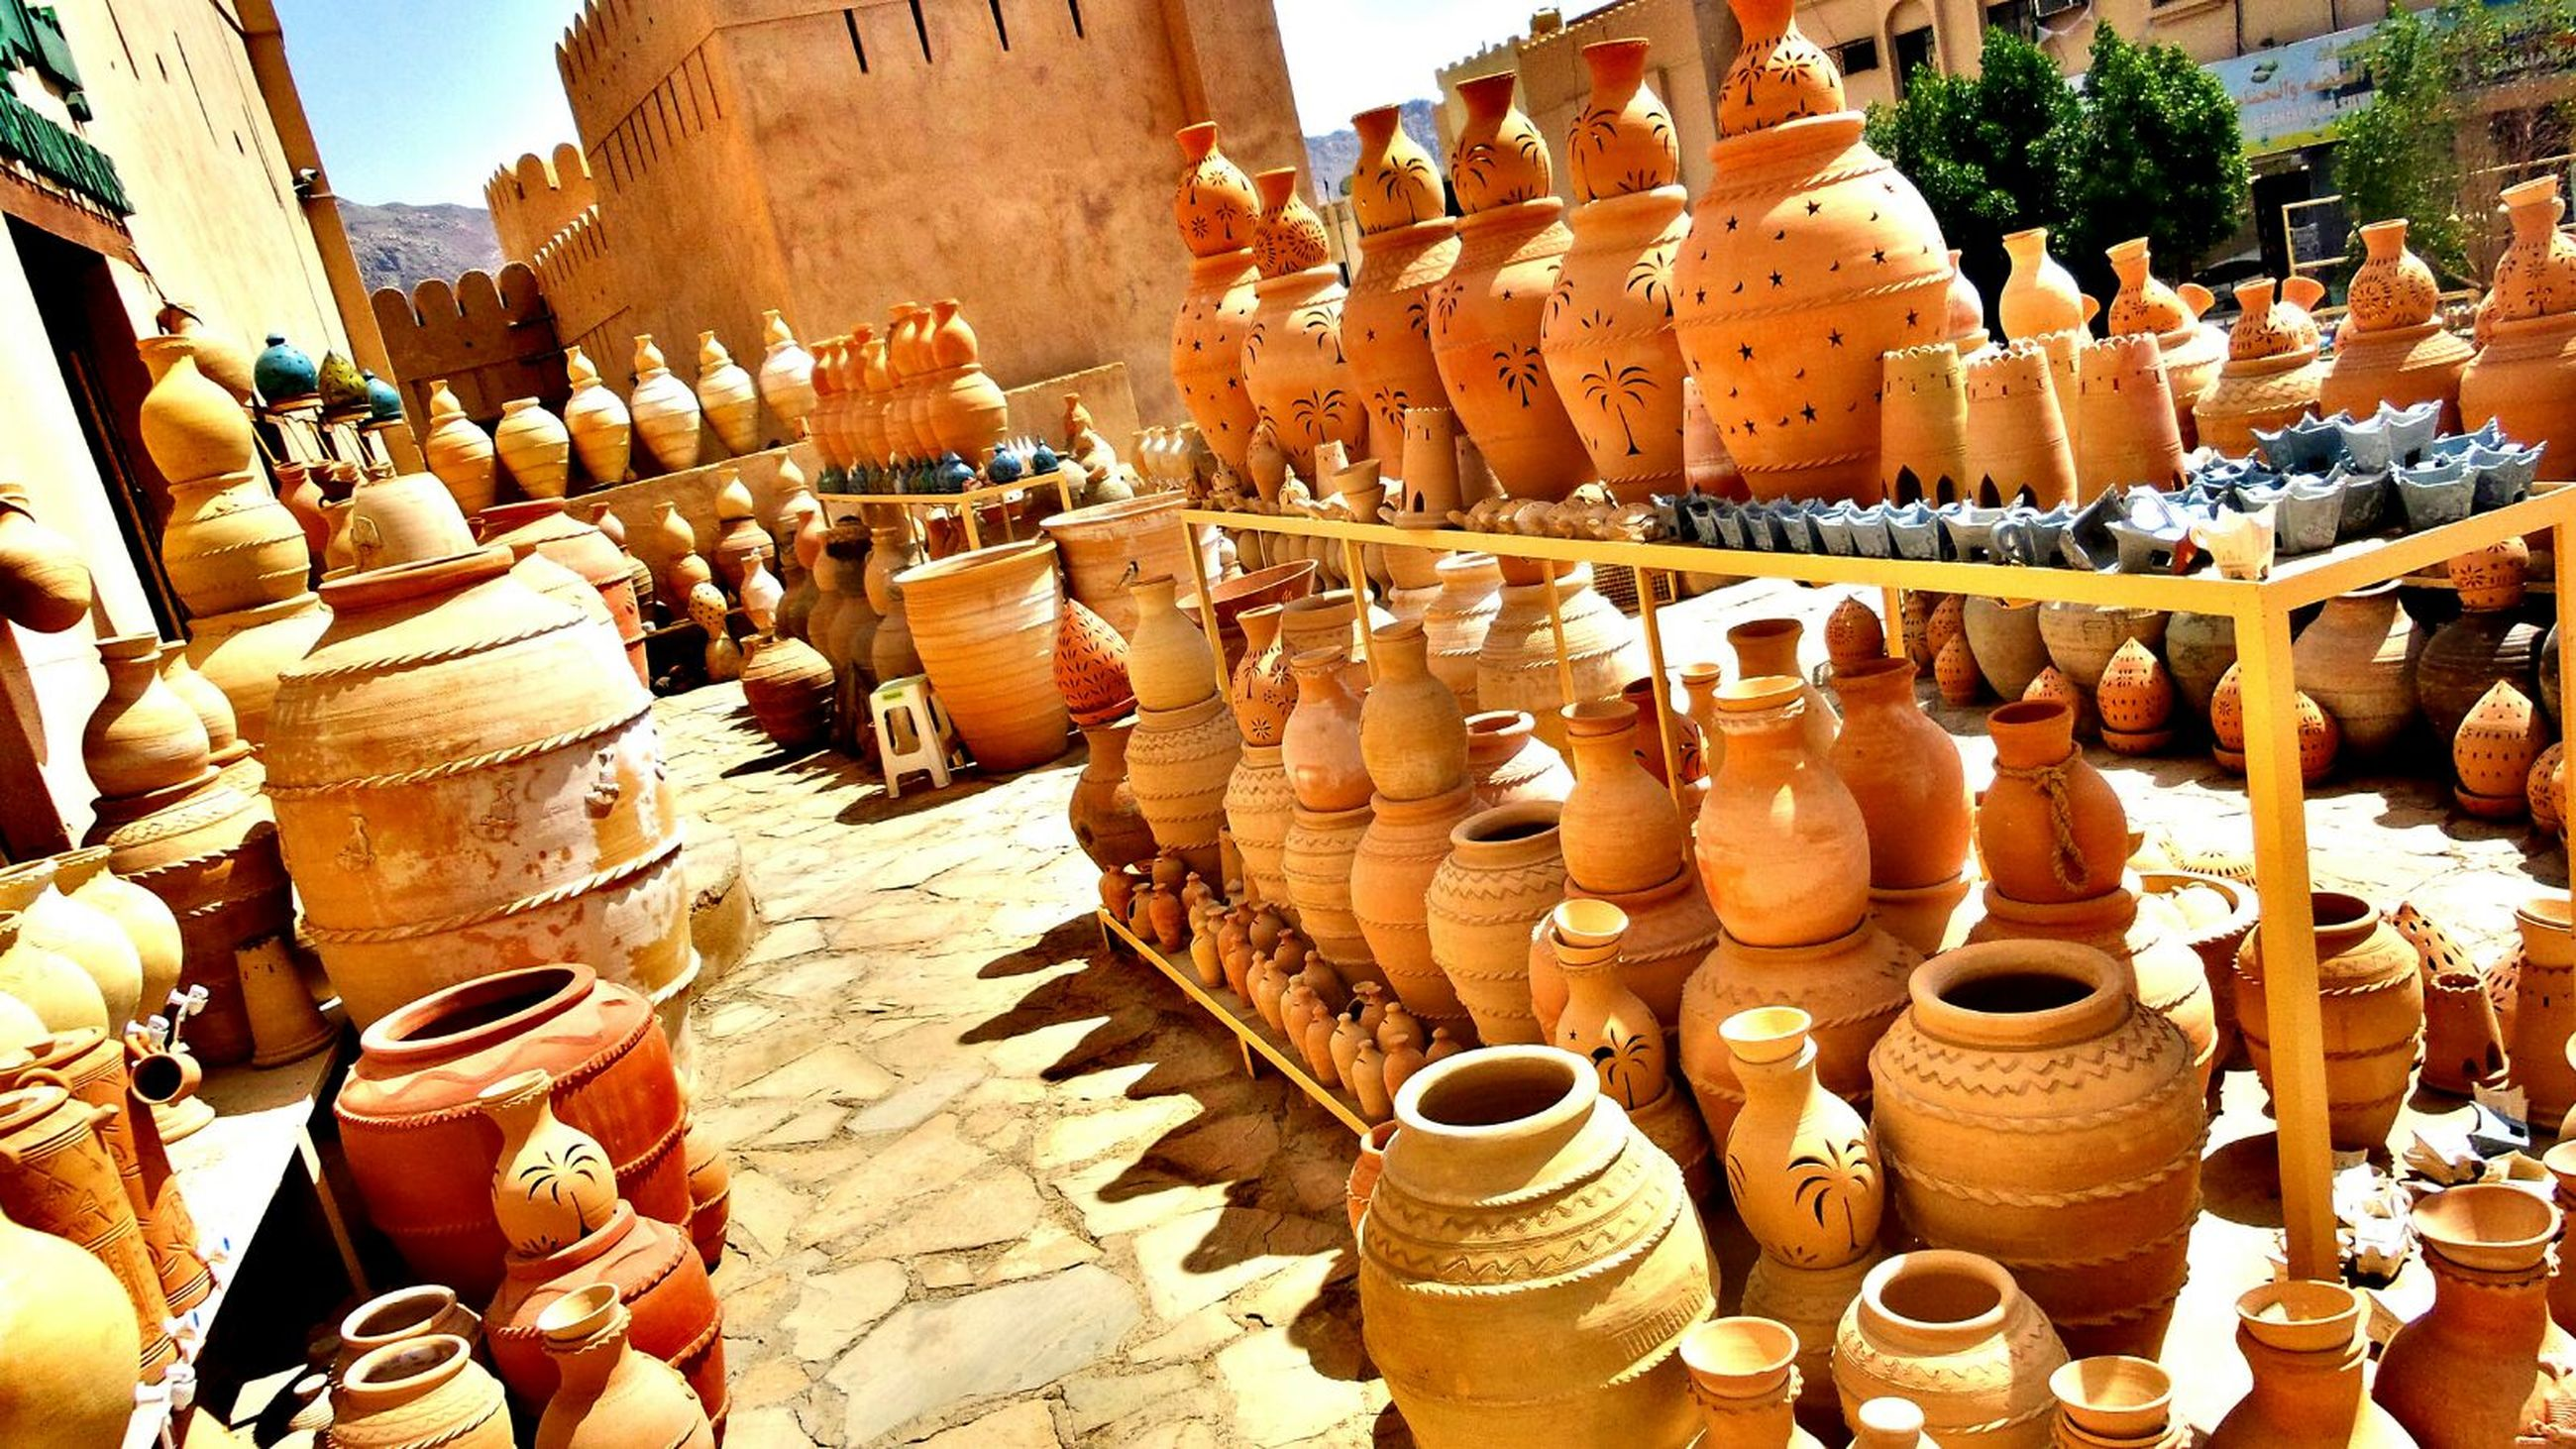 clay, art and craft, earthenware, large group of objects, variation, outdoors, for sale, day, small business, retail, workshop, no people, sculpture